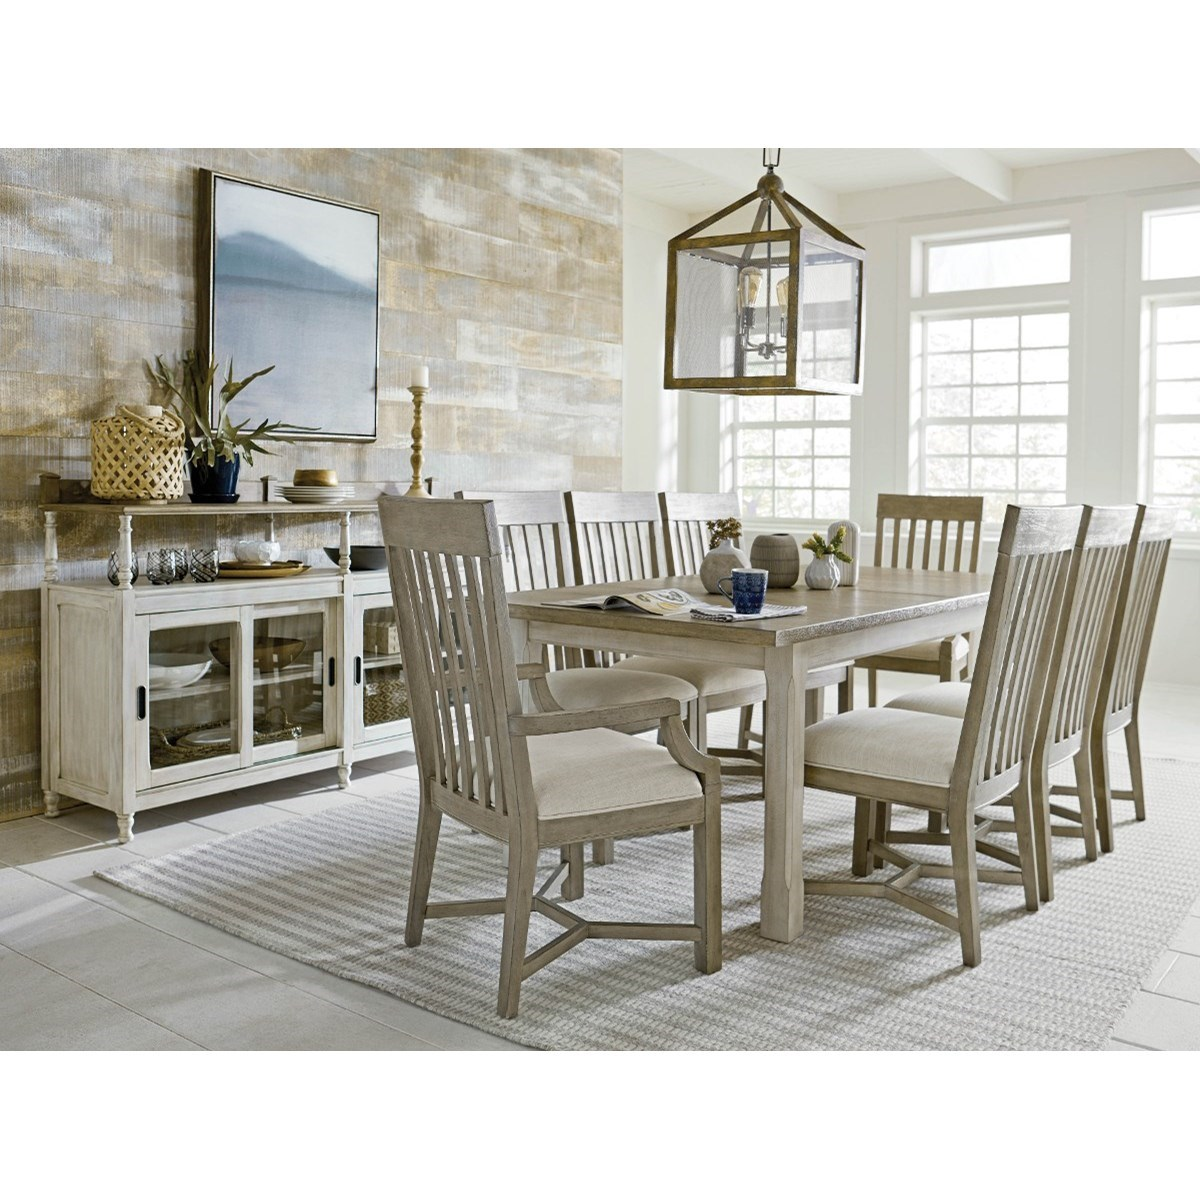 Litchfield Formal Dining Room Group by American Drew at Stoney Creek Furniture